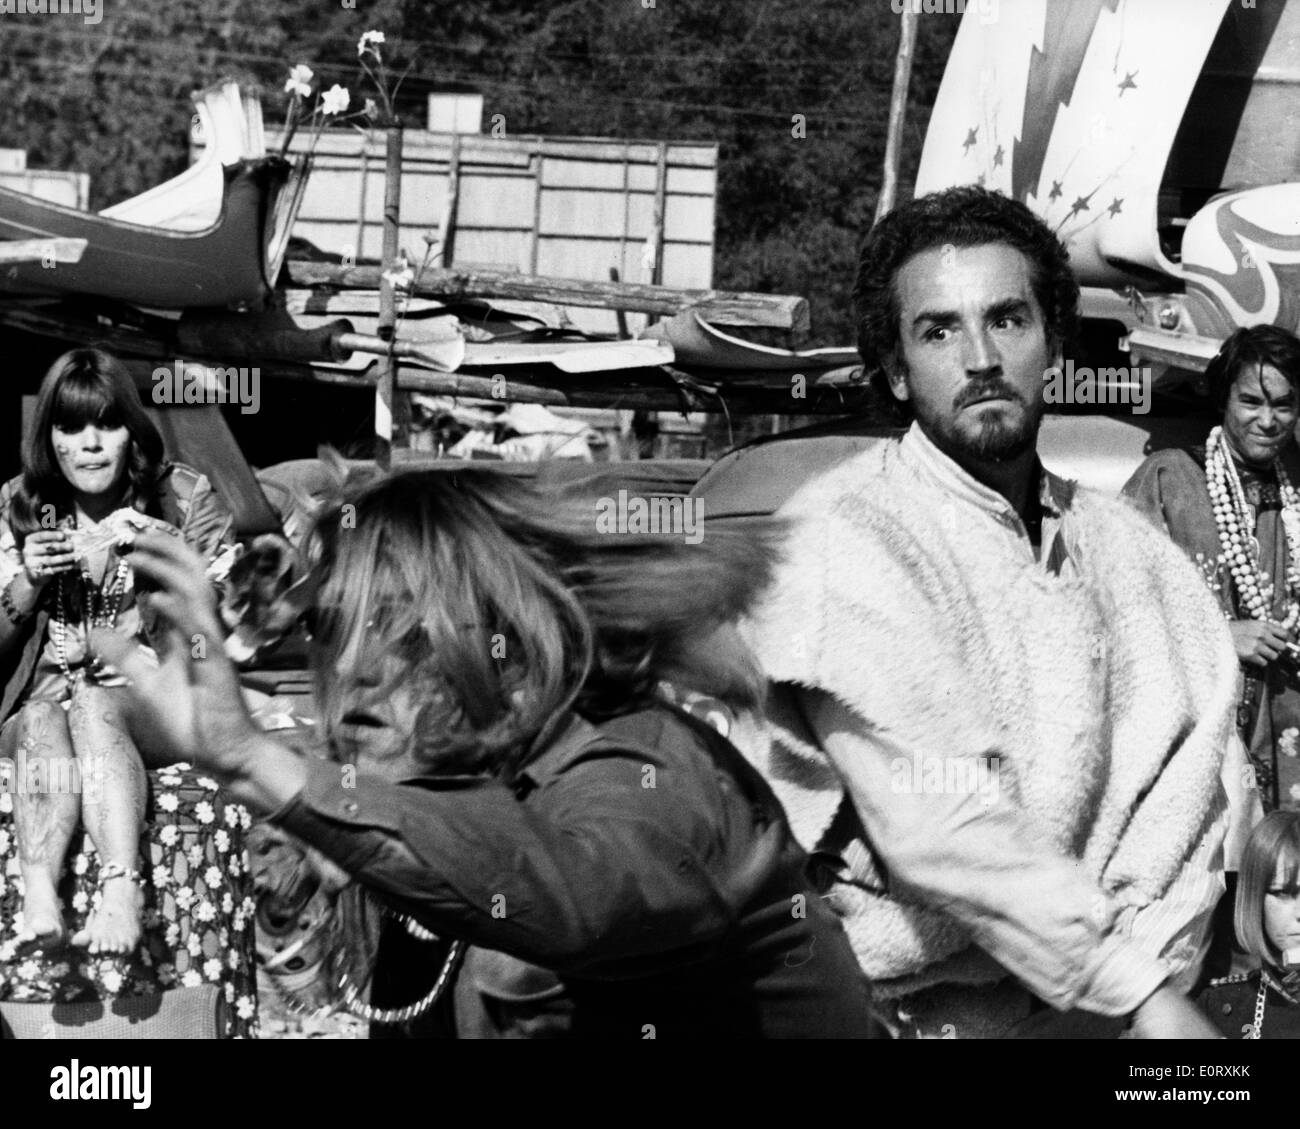 Actor and director, VITTORIO GASSMAN on set. - Stock Image